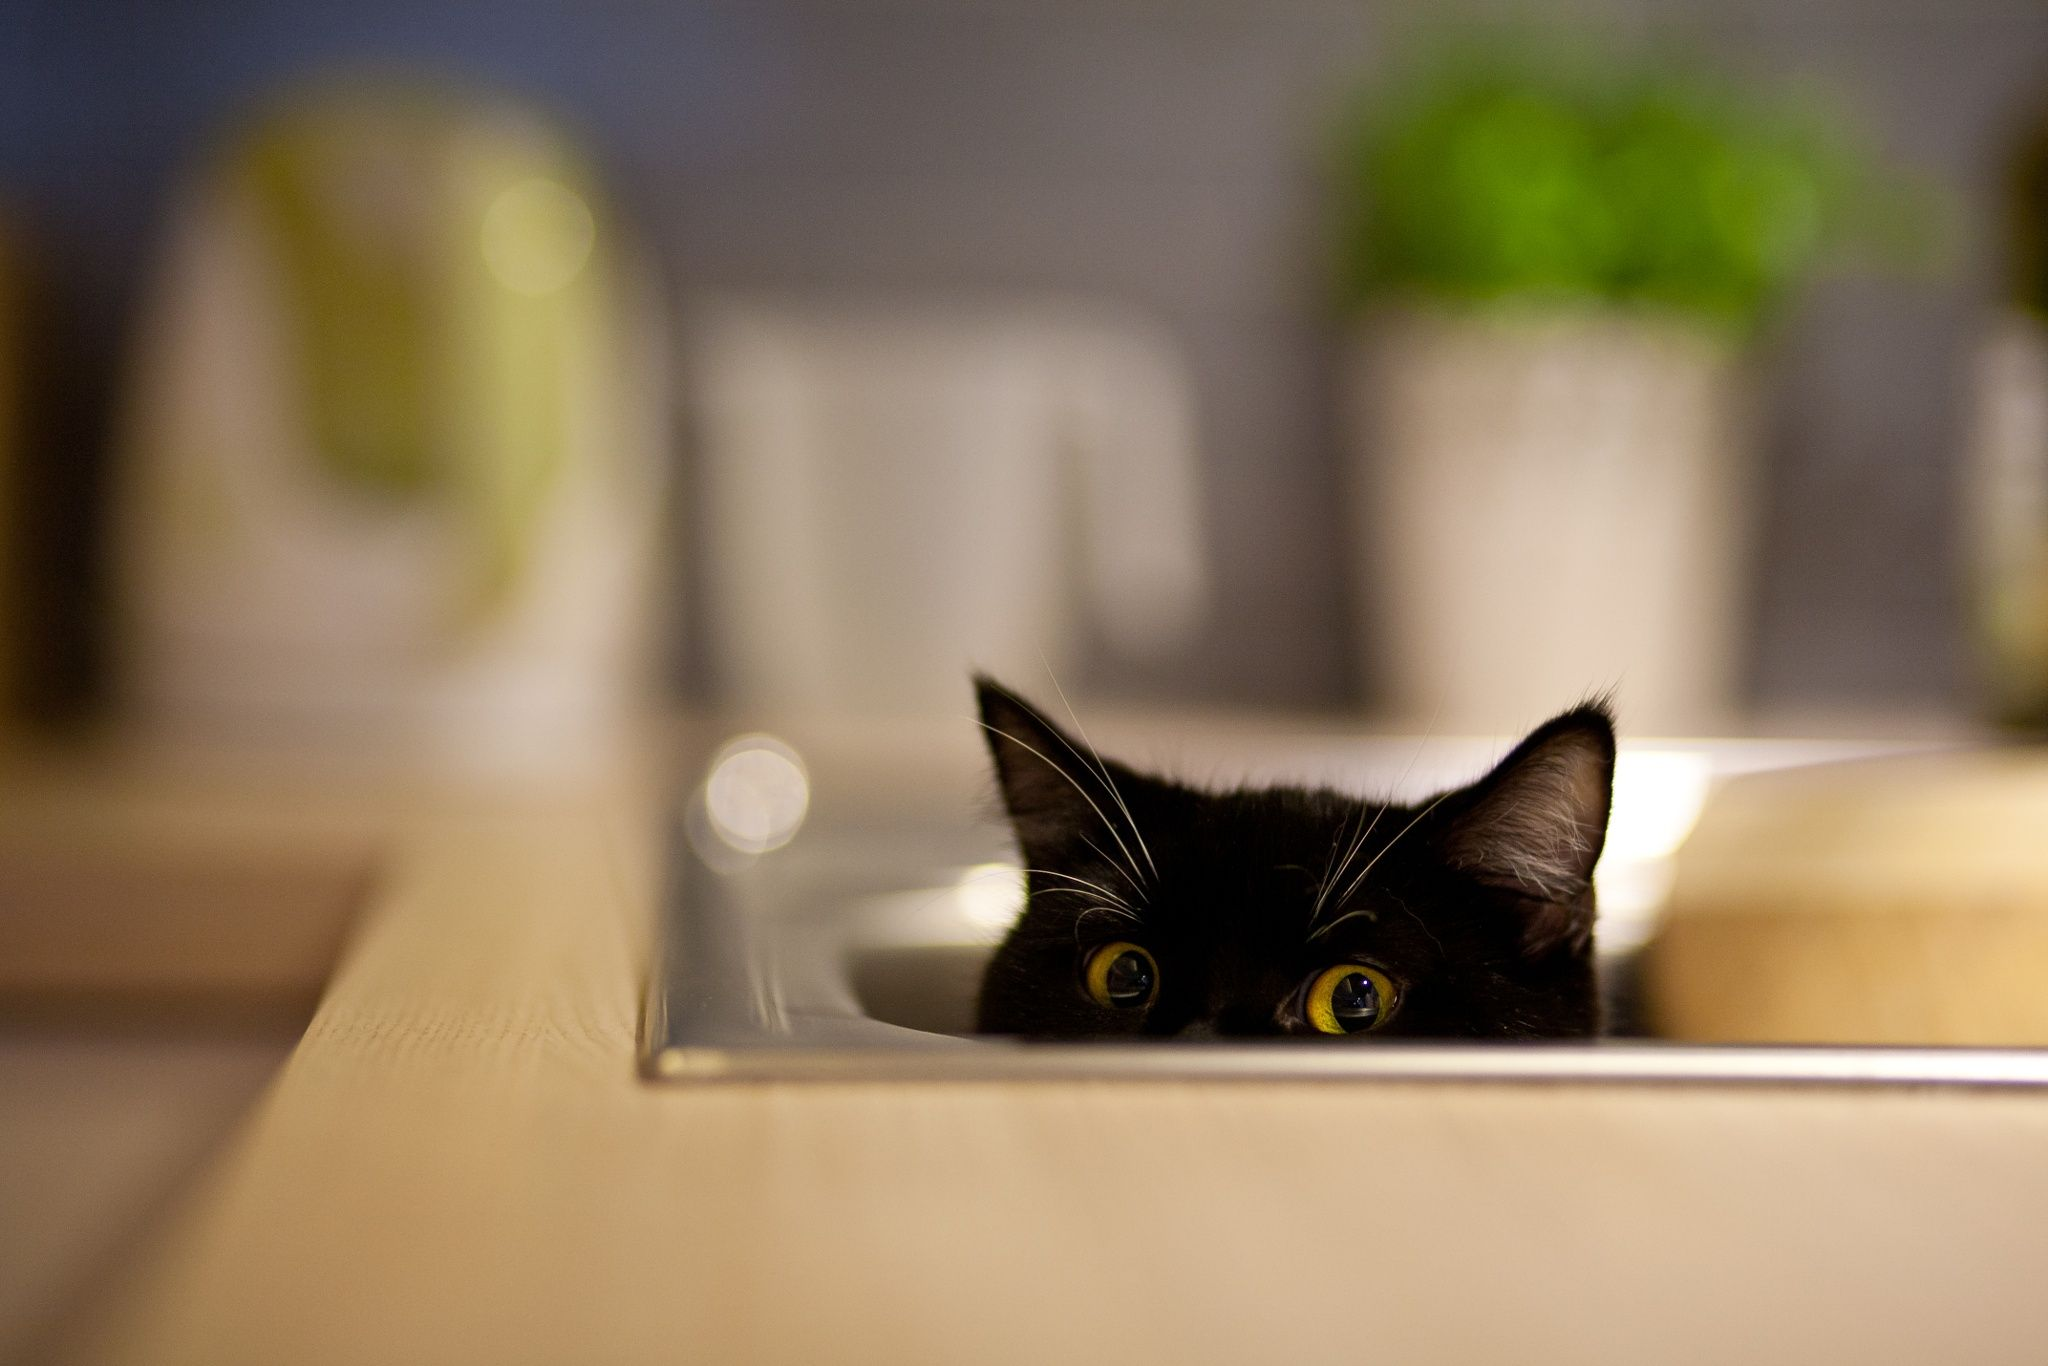 Cat eyes by Artur Owsiany on 500px